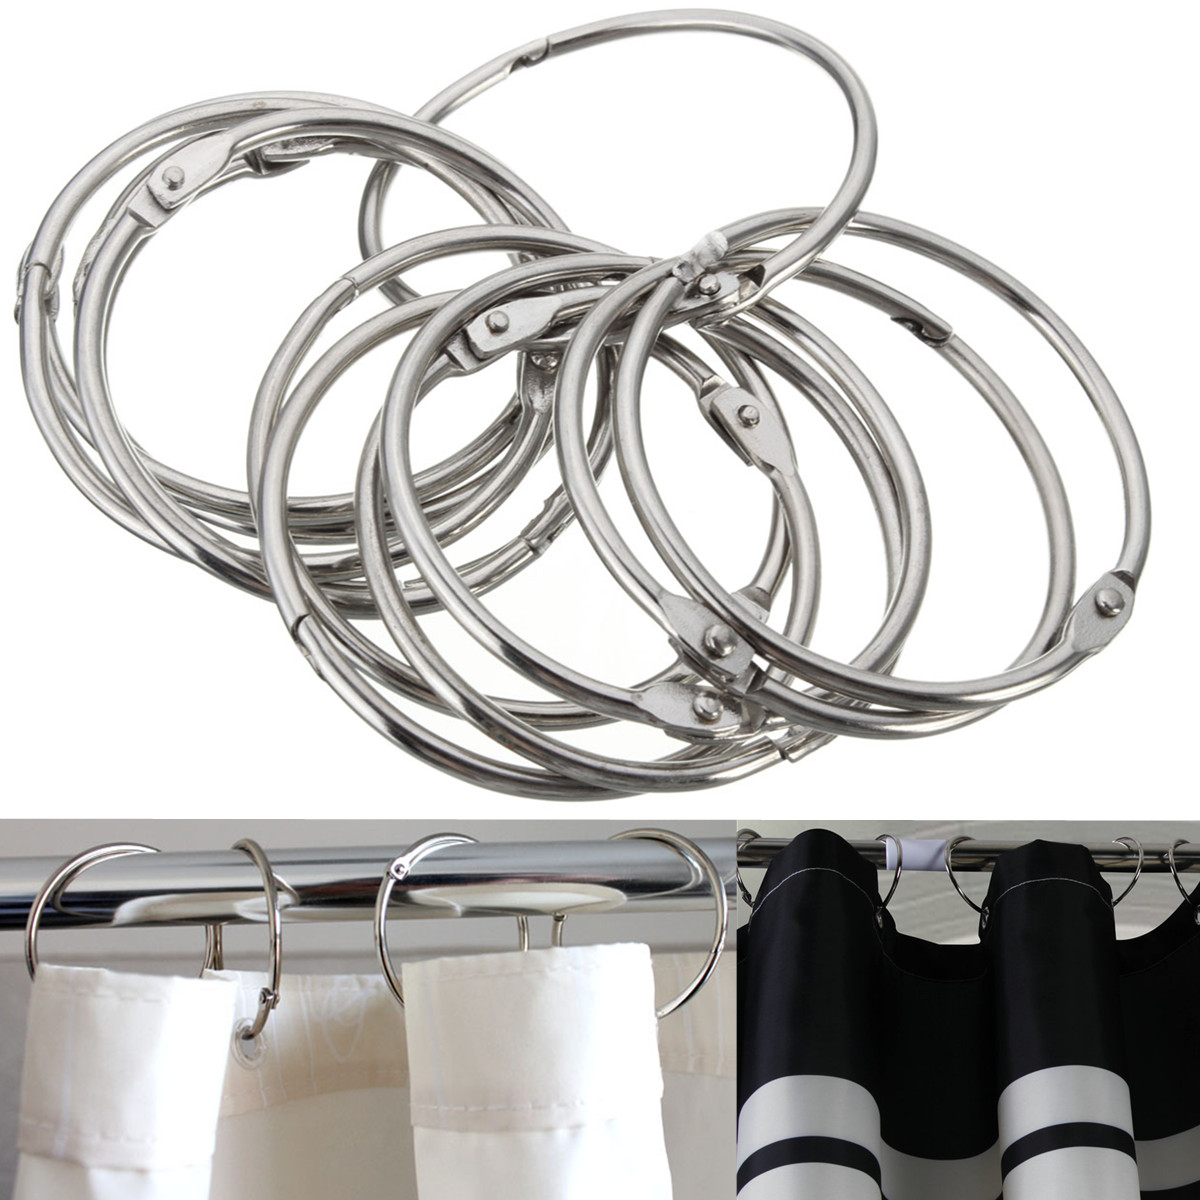 5cm Round Circular Shower Curtain Hooks Rings Anti Rust Silver Hinges Closure Mechanism Stainless Steel Durable Slideable